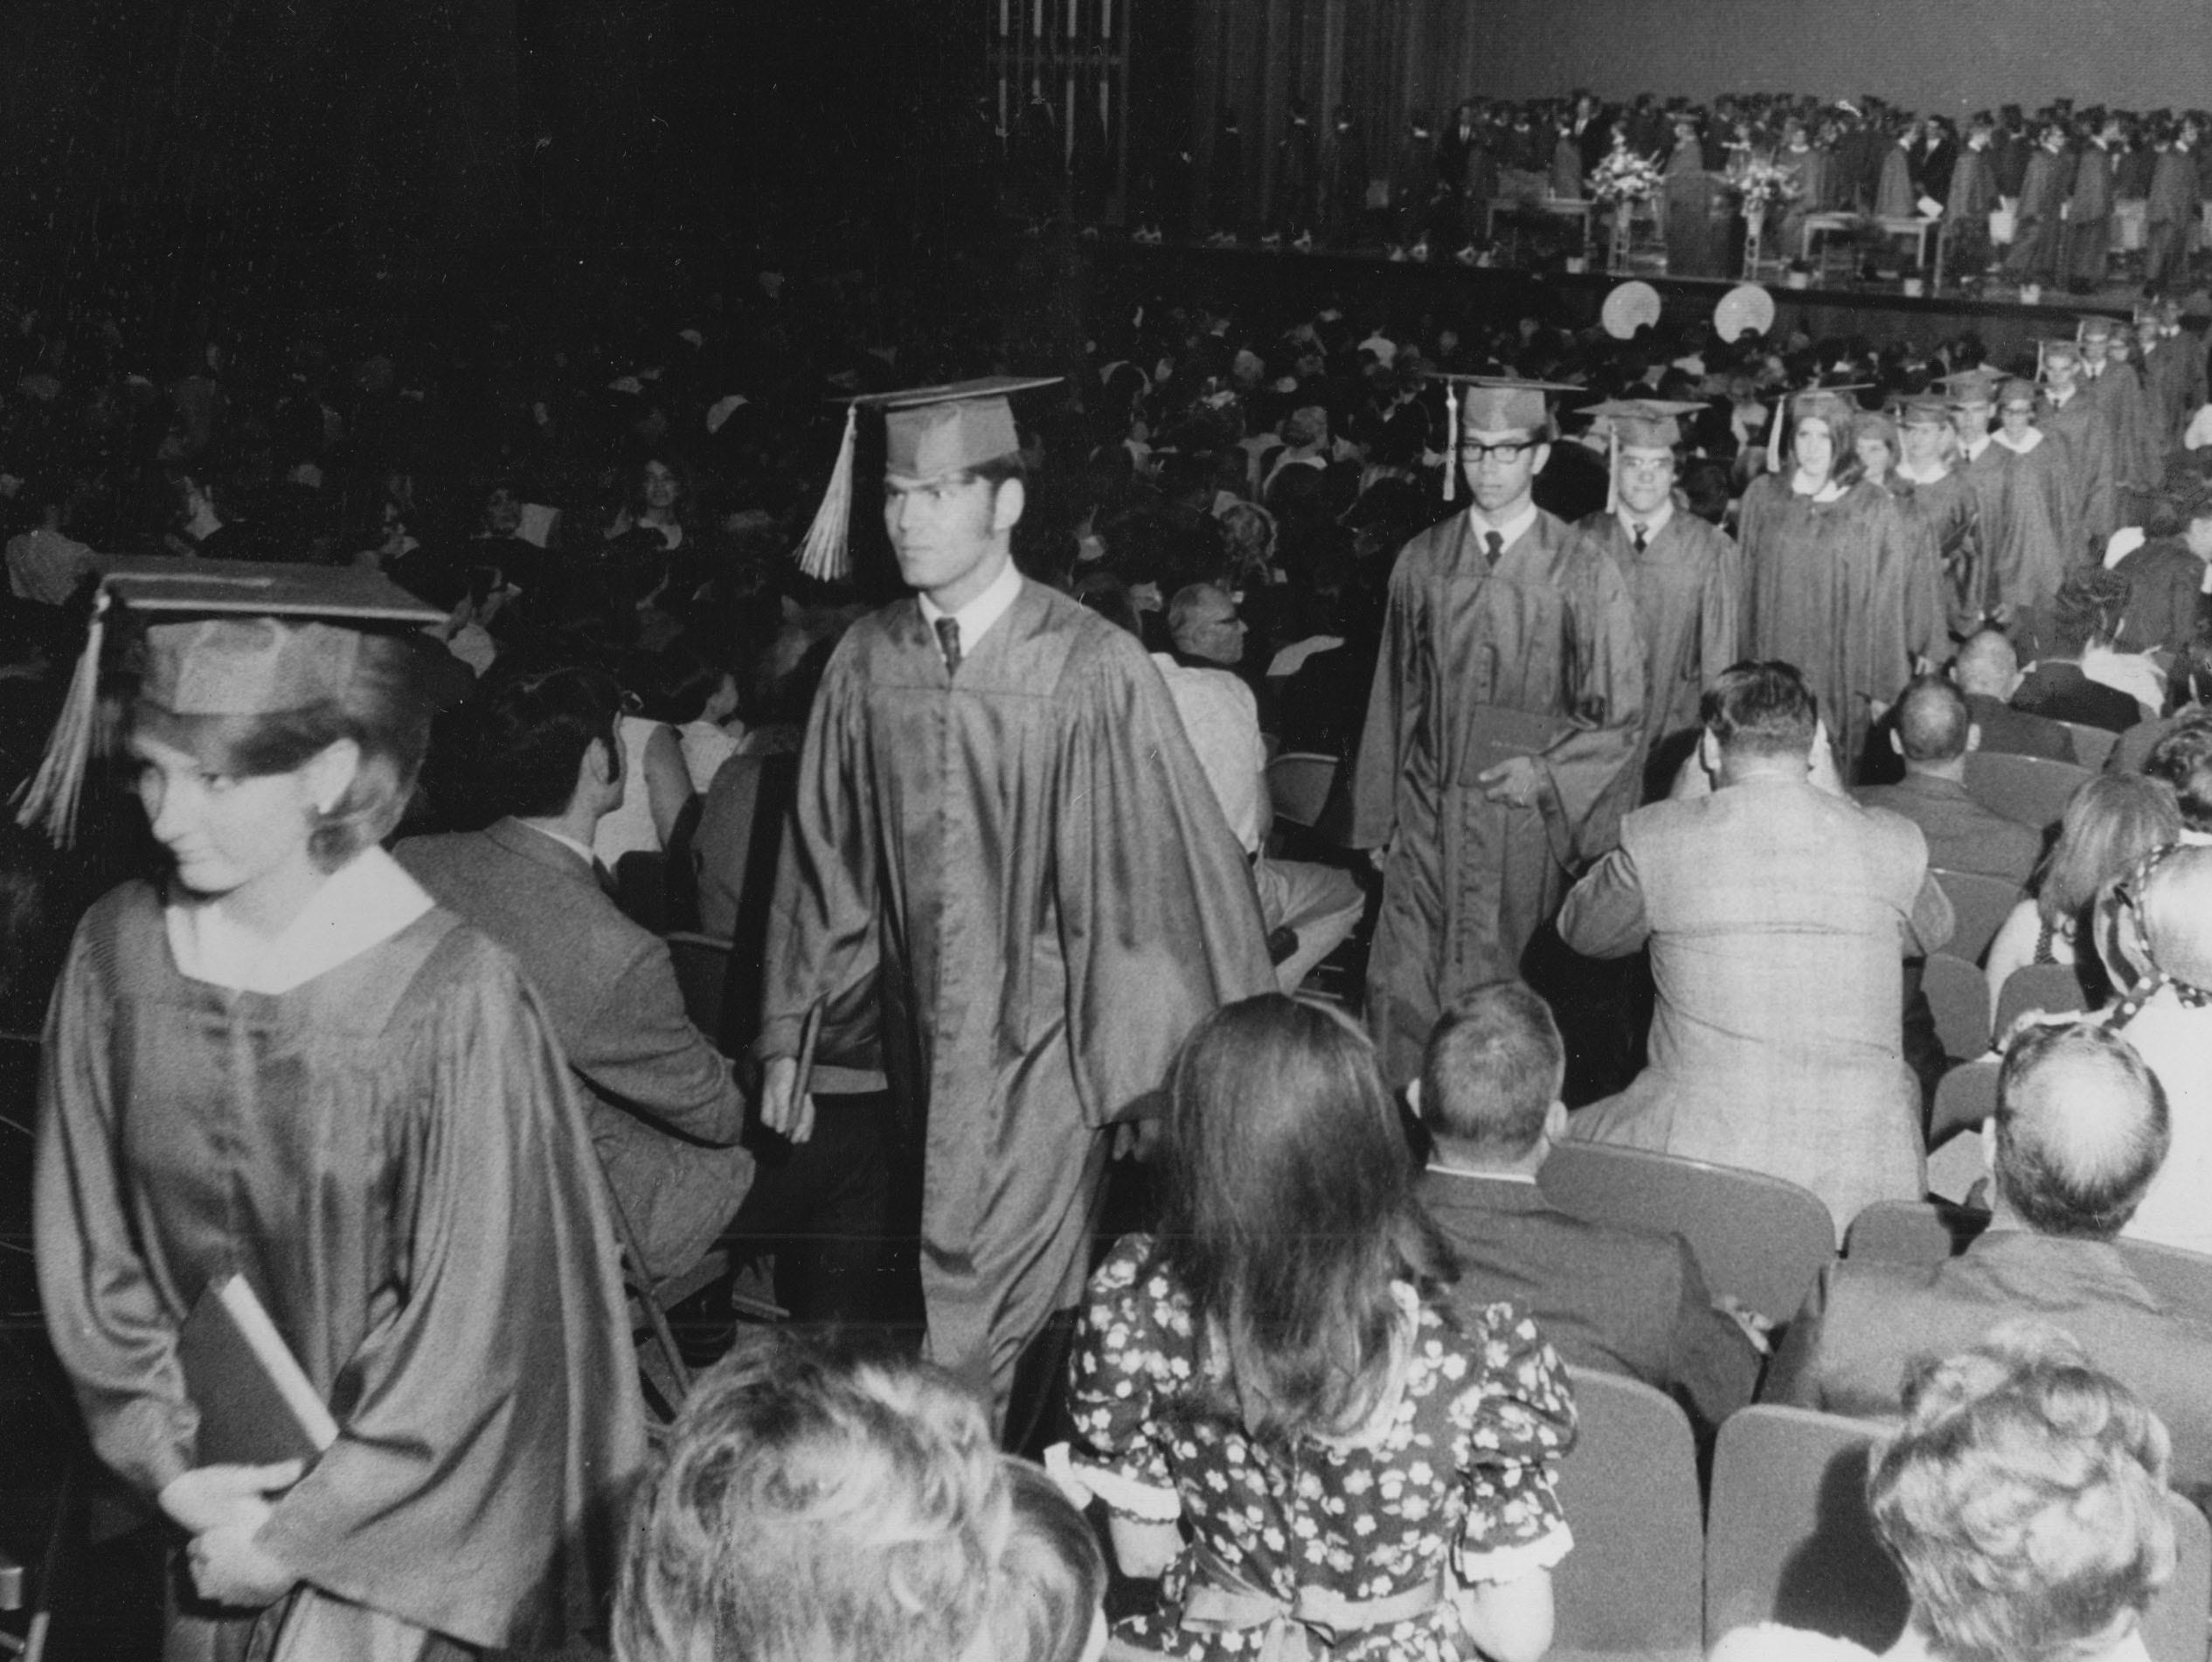 241 seniors of the first graduation class from John Marshall High School in 1969.